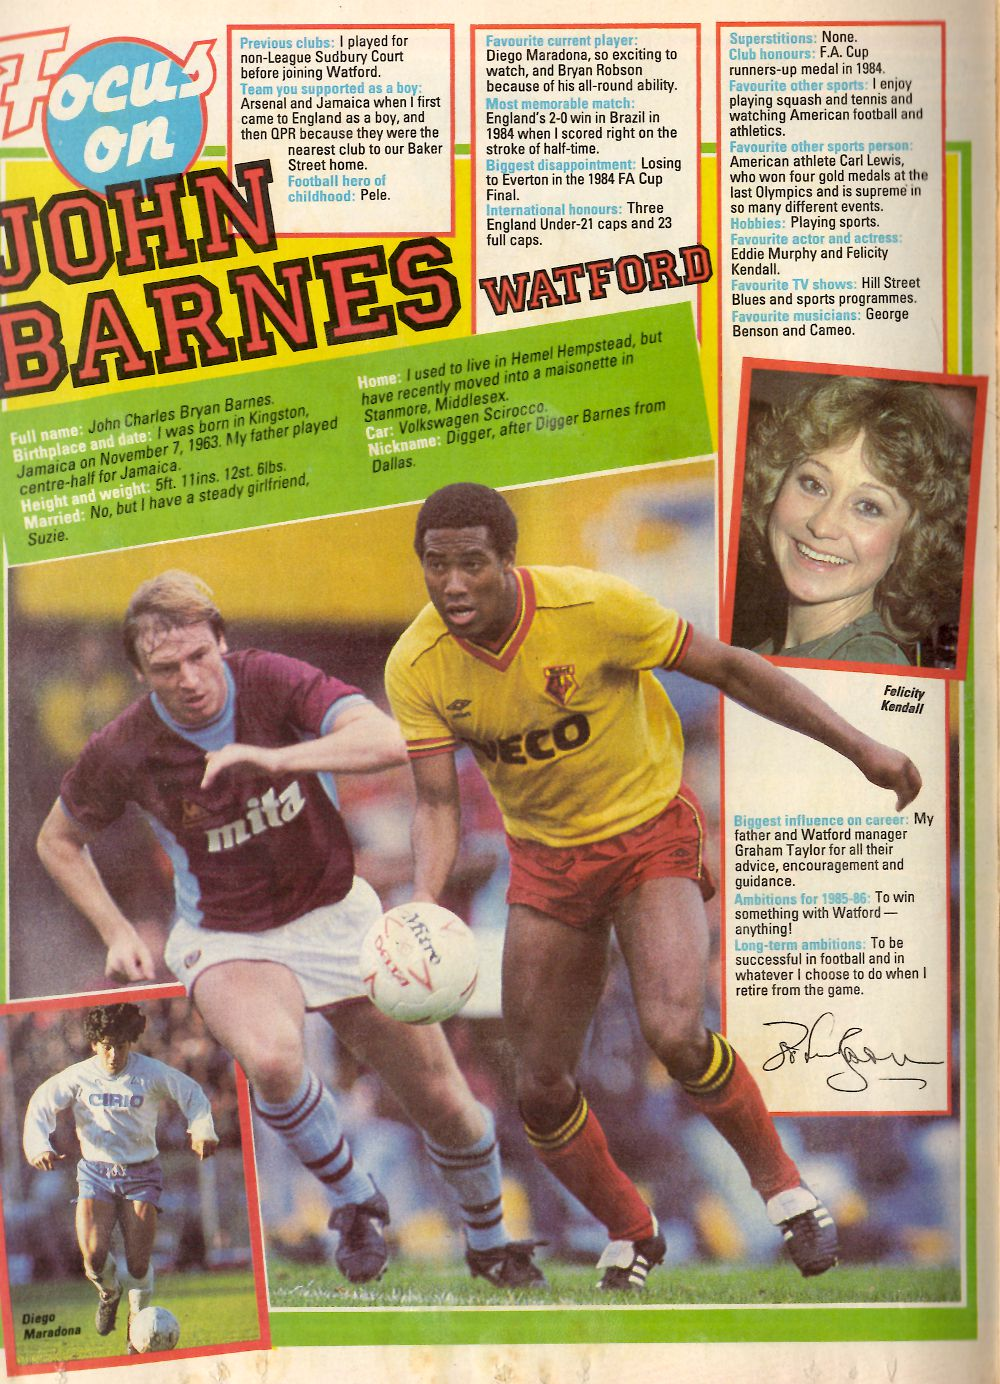 Focus on Watford's John Barnes